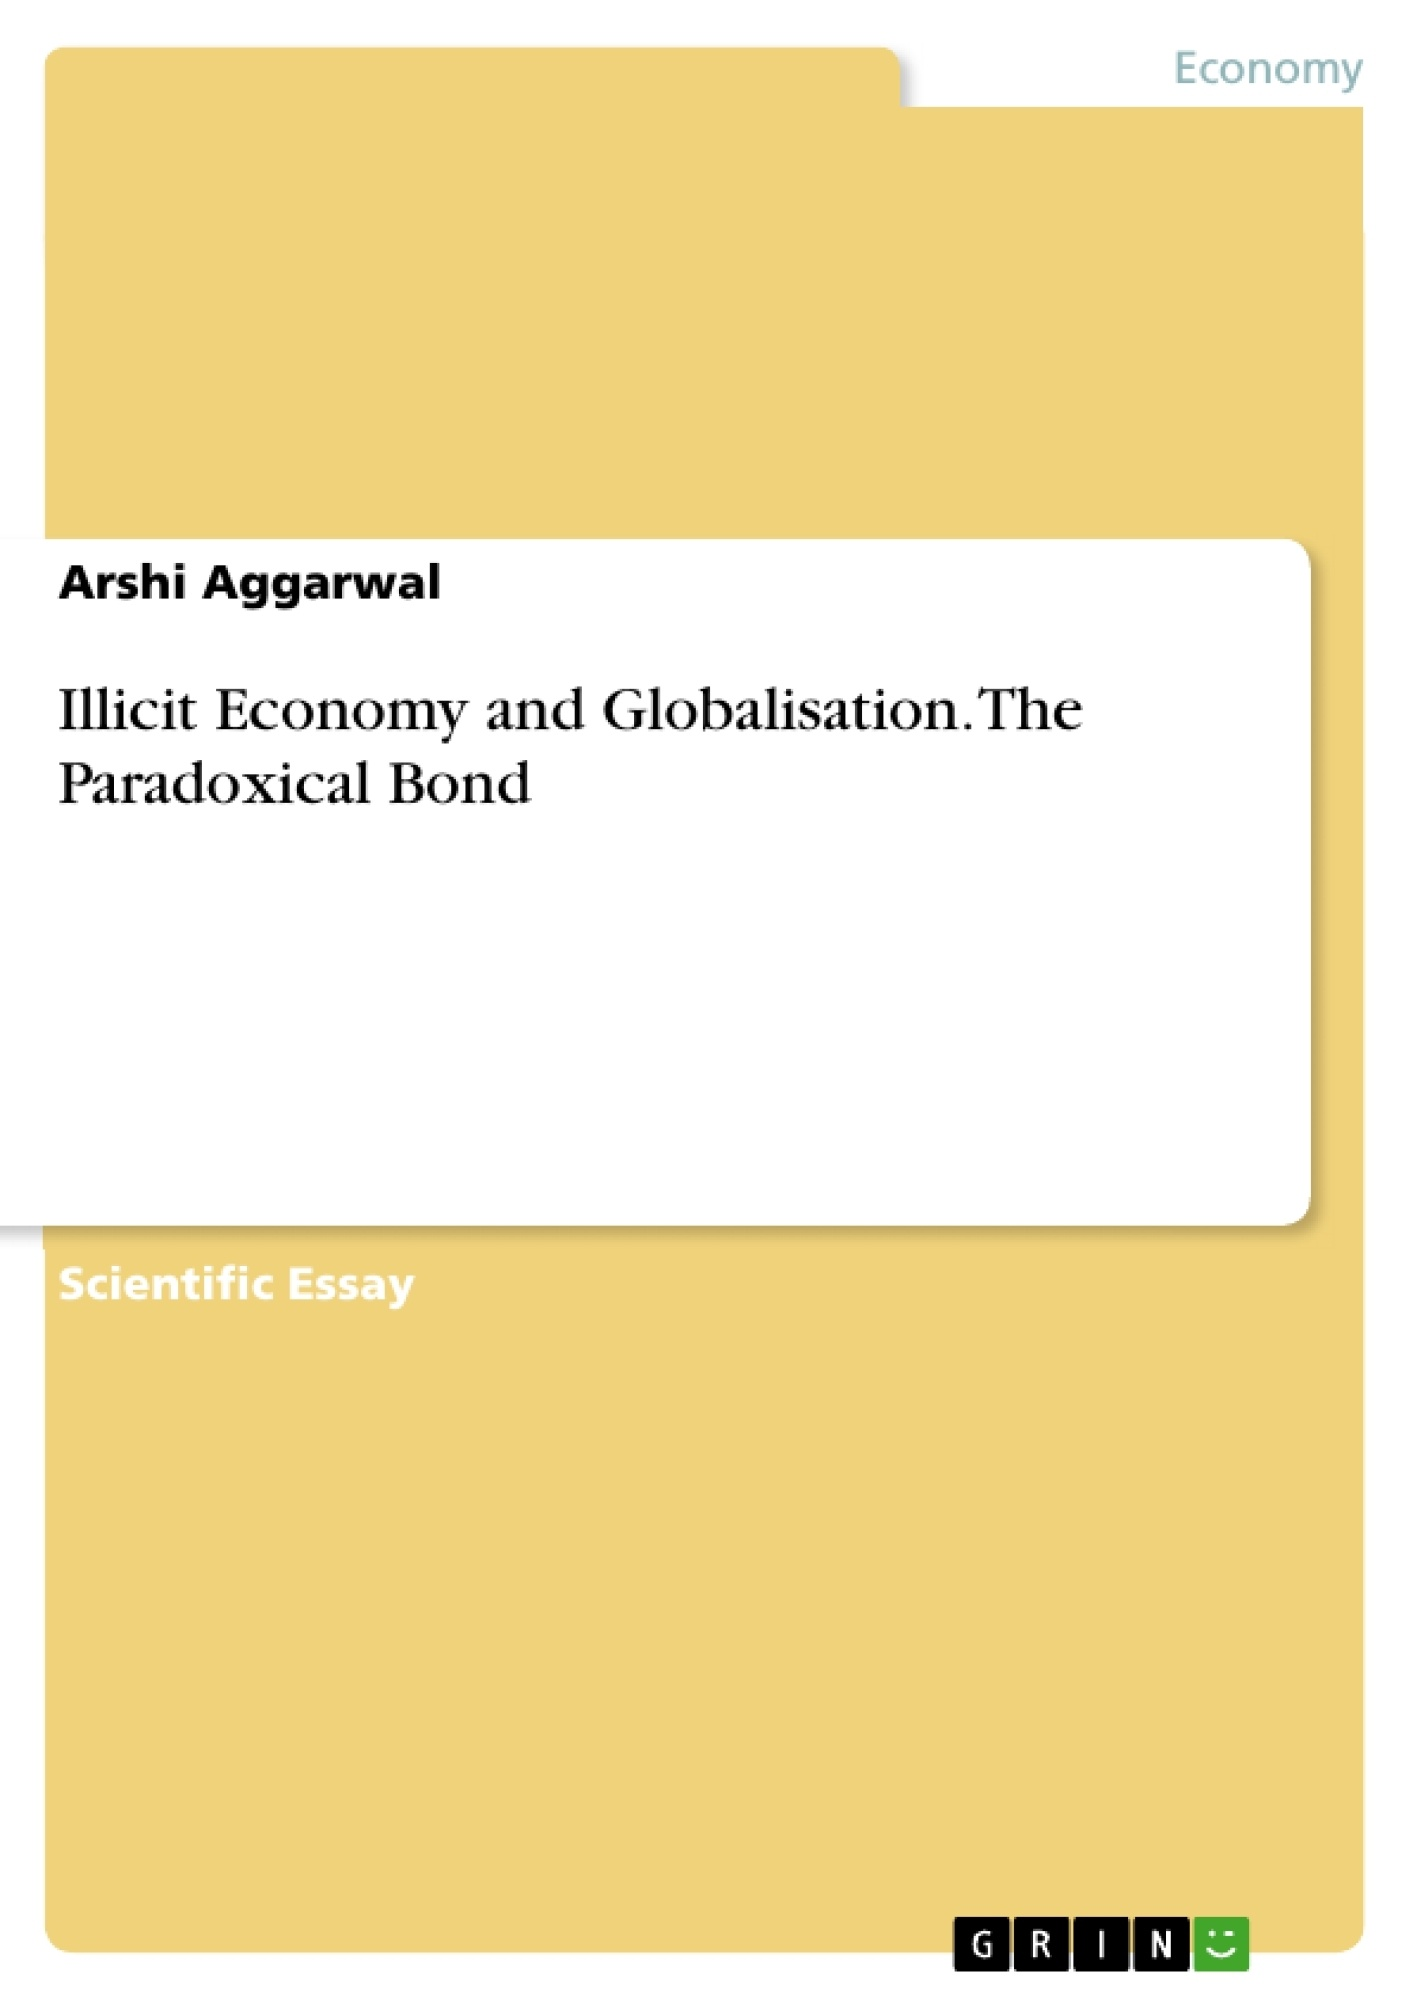 GRIN - Illicit Economy and Globalisation  The Paradoxical Bond